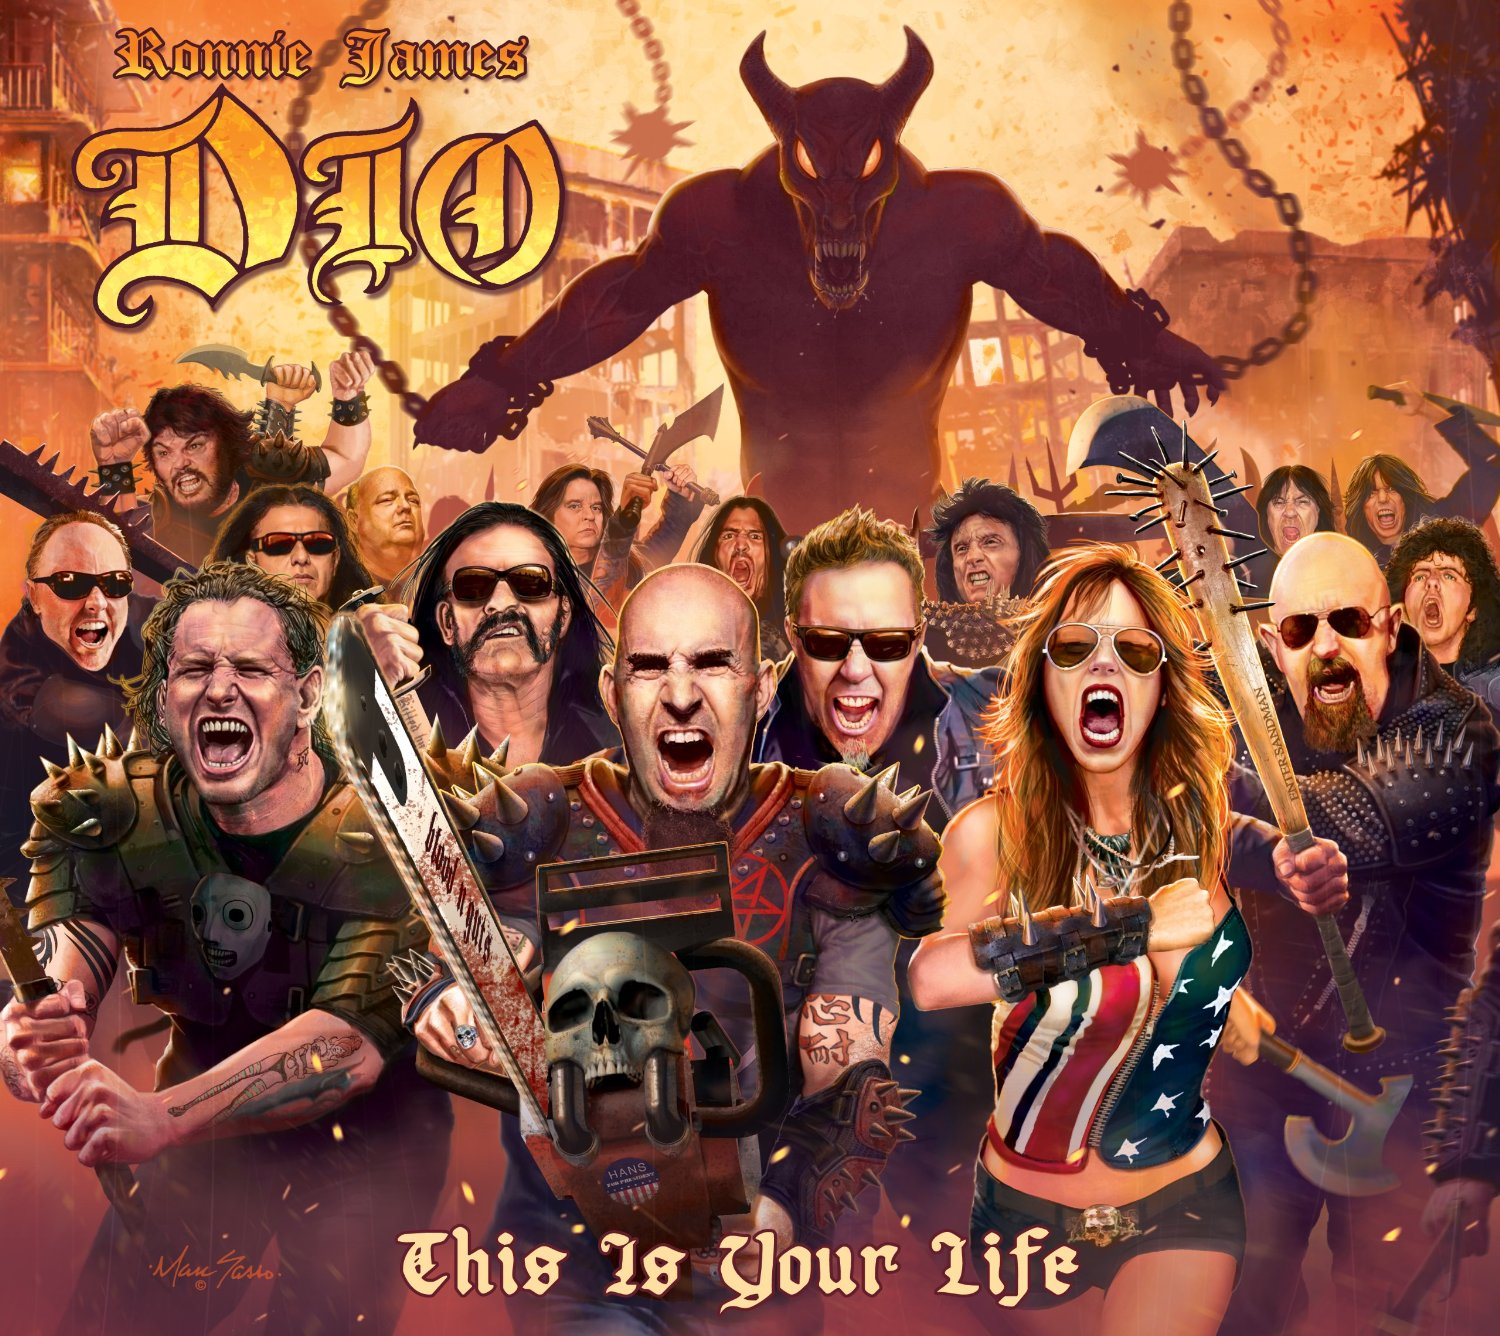 ronnie-james-dio-this-is-your-life-promo-cover-pic-2014